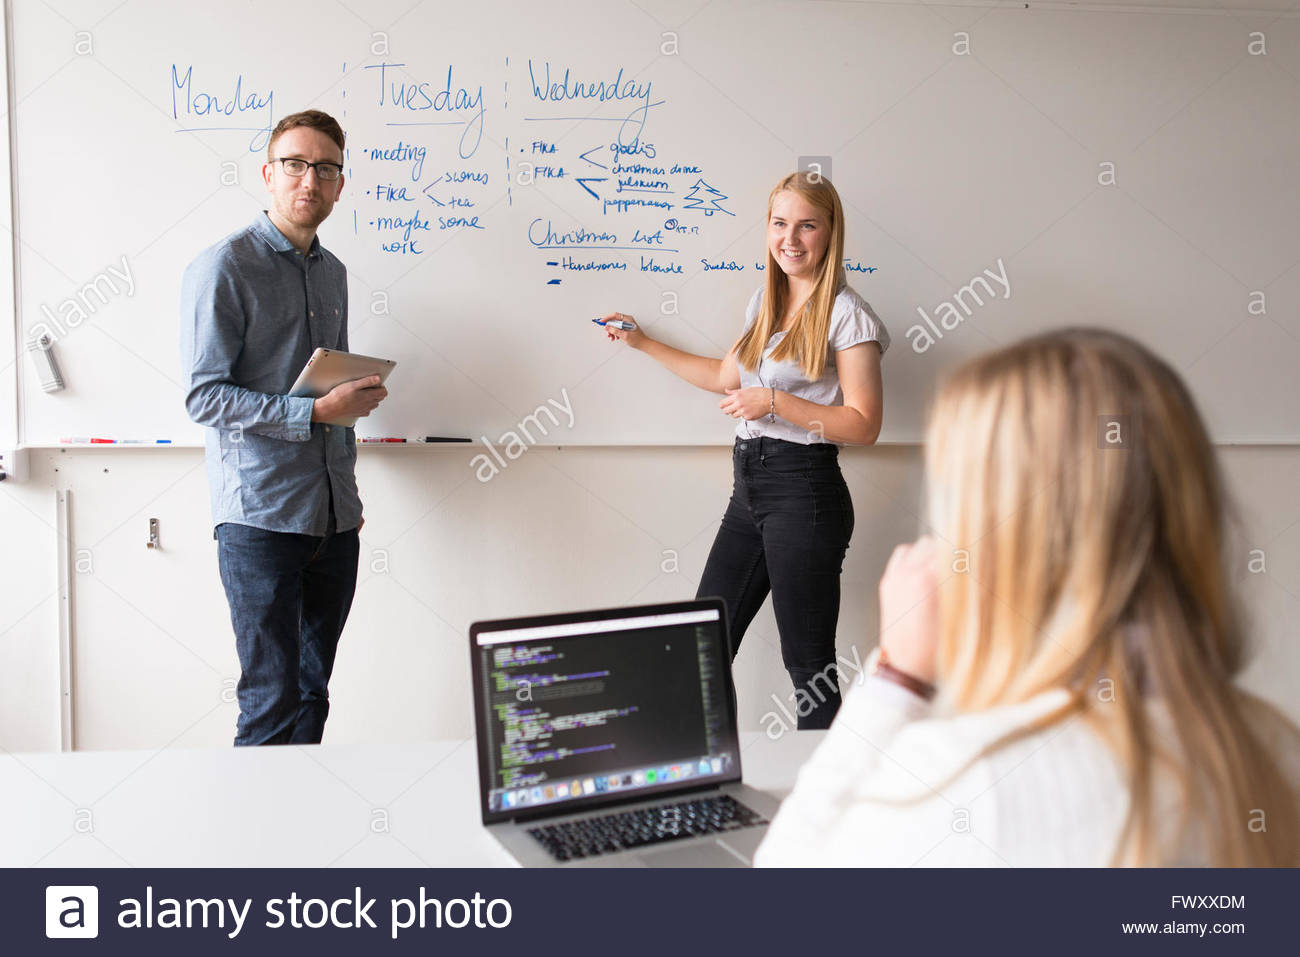 Sweden, Colleagues giving presentation in board room - Stock Image